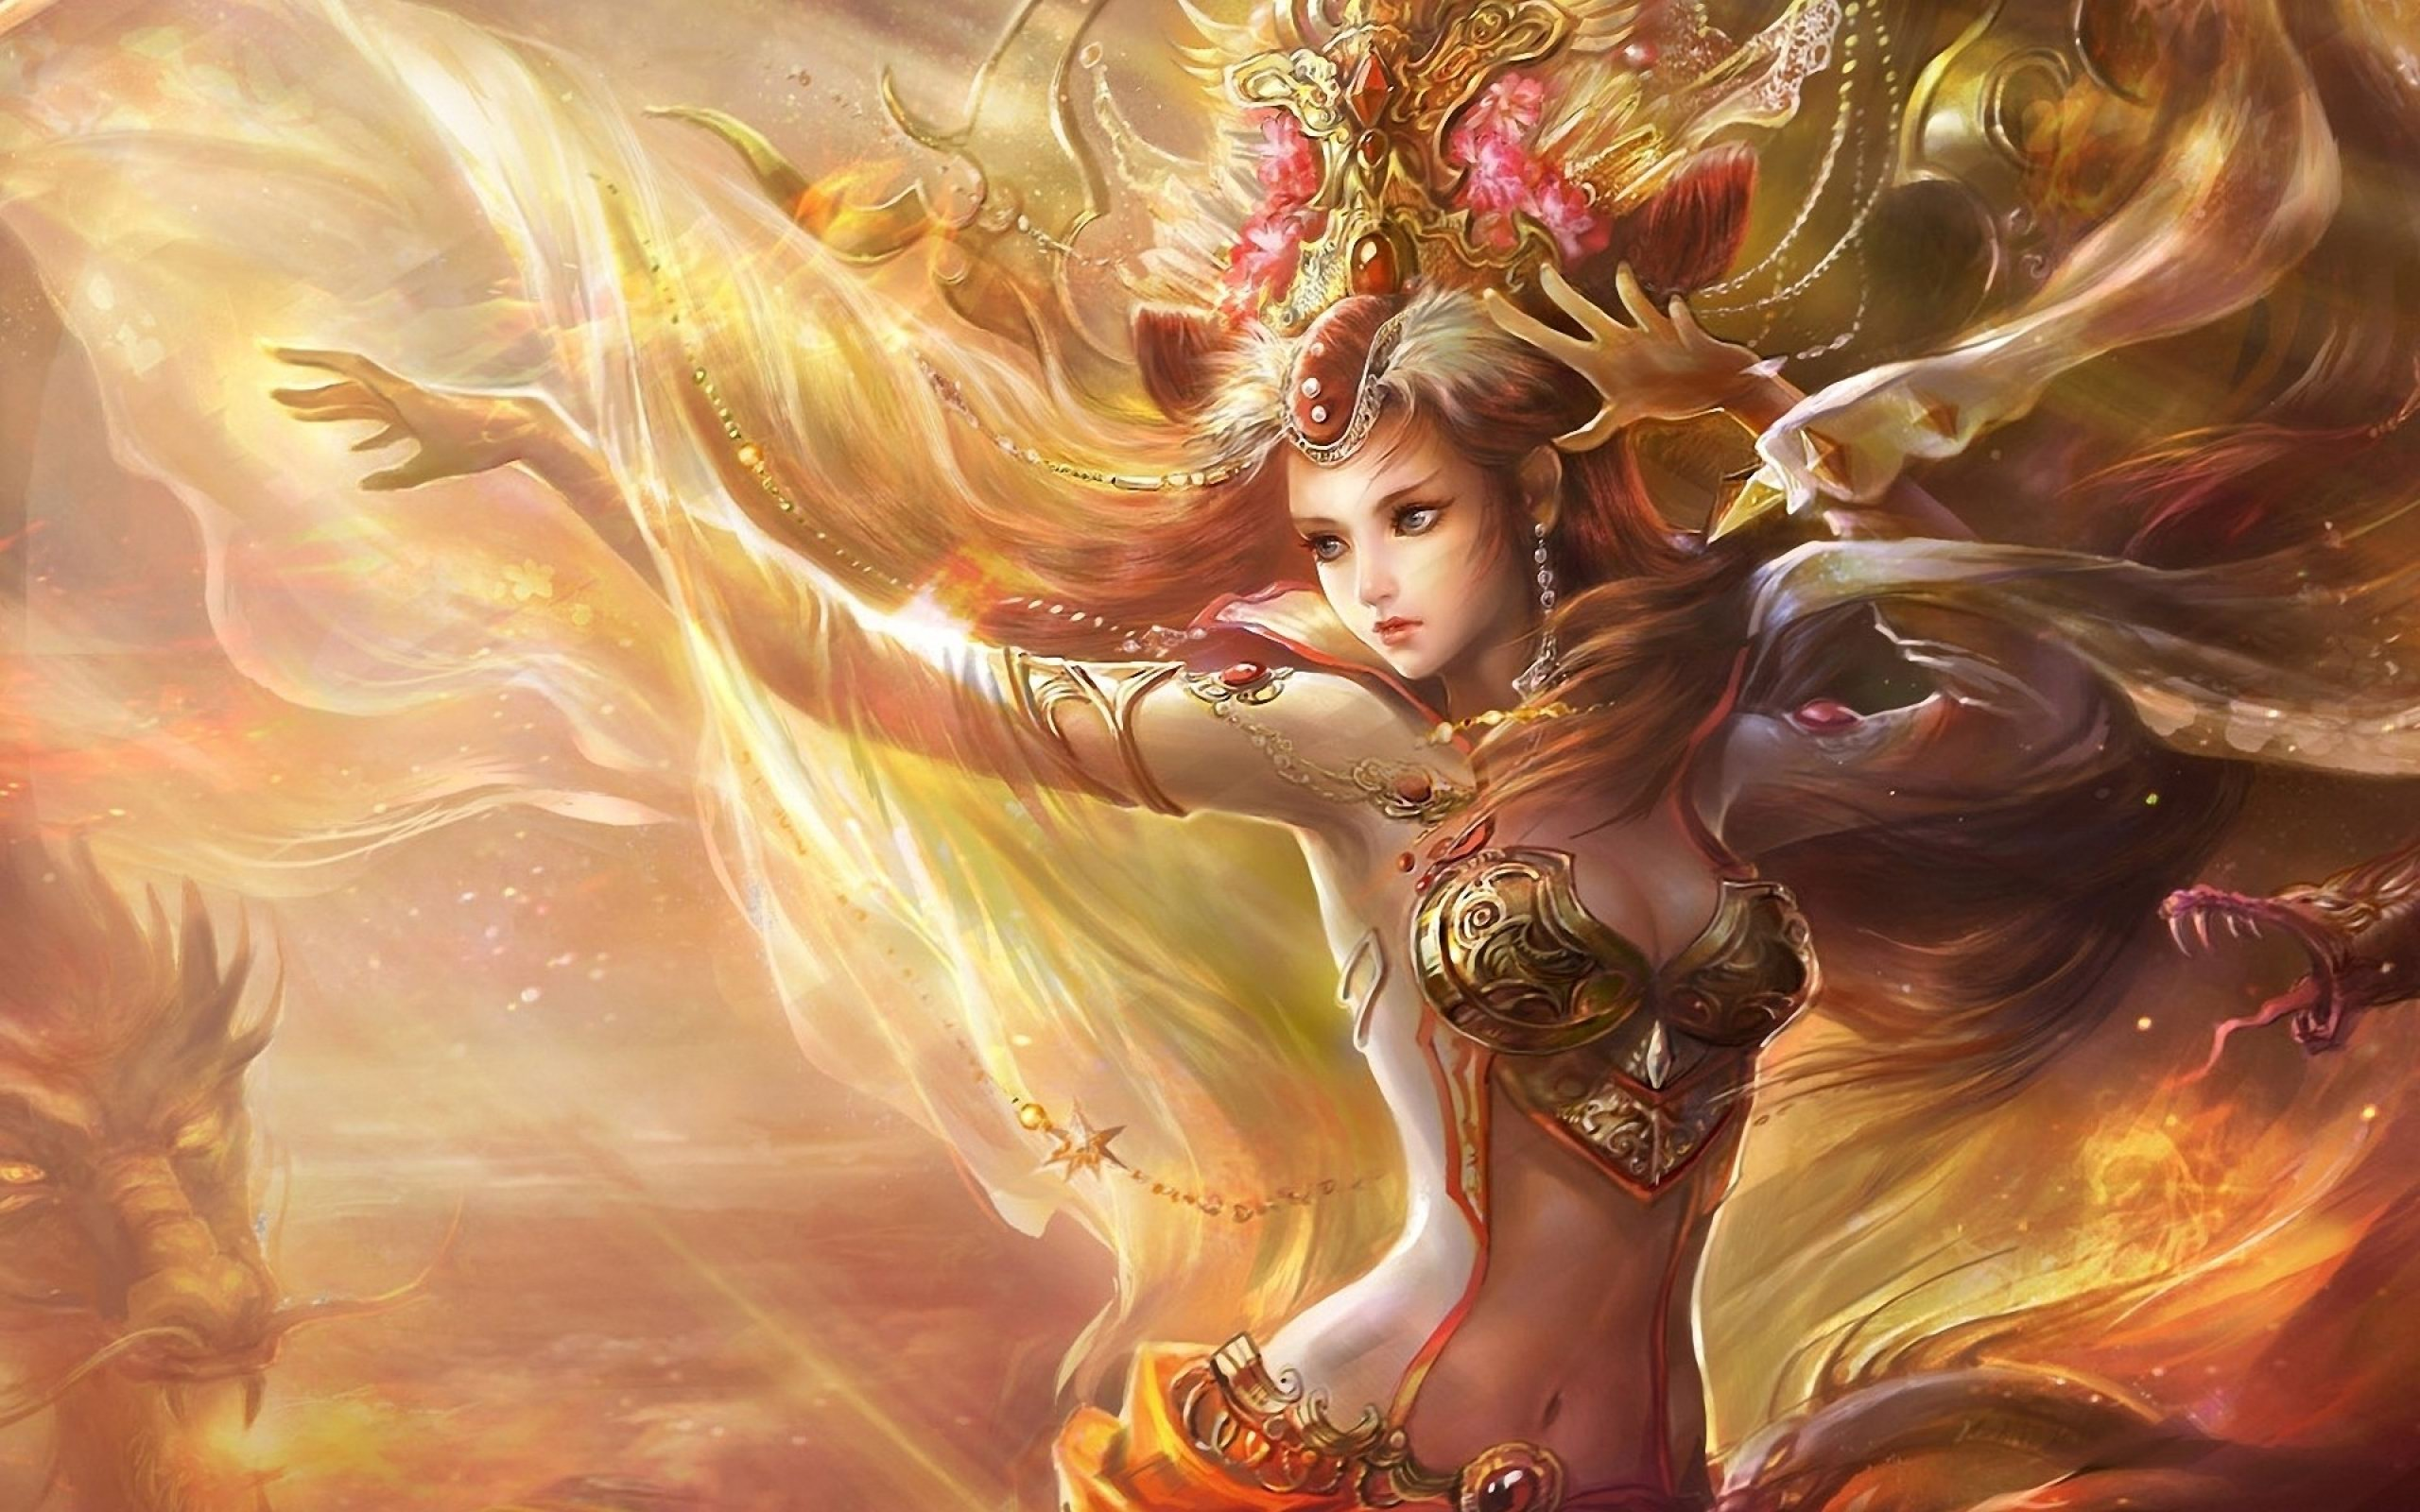 Women Fantasy Art Artwork HD Wallpaper For Desktop